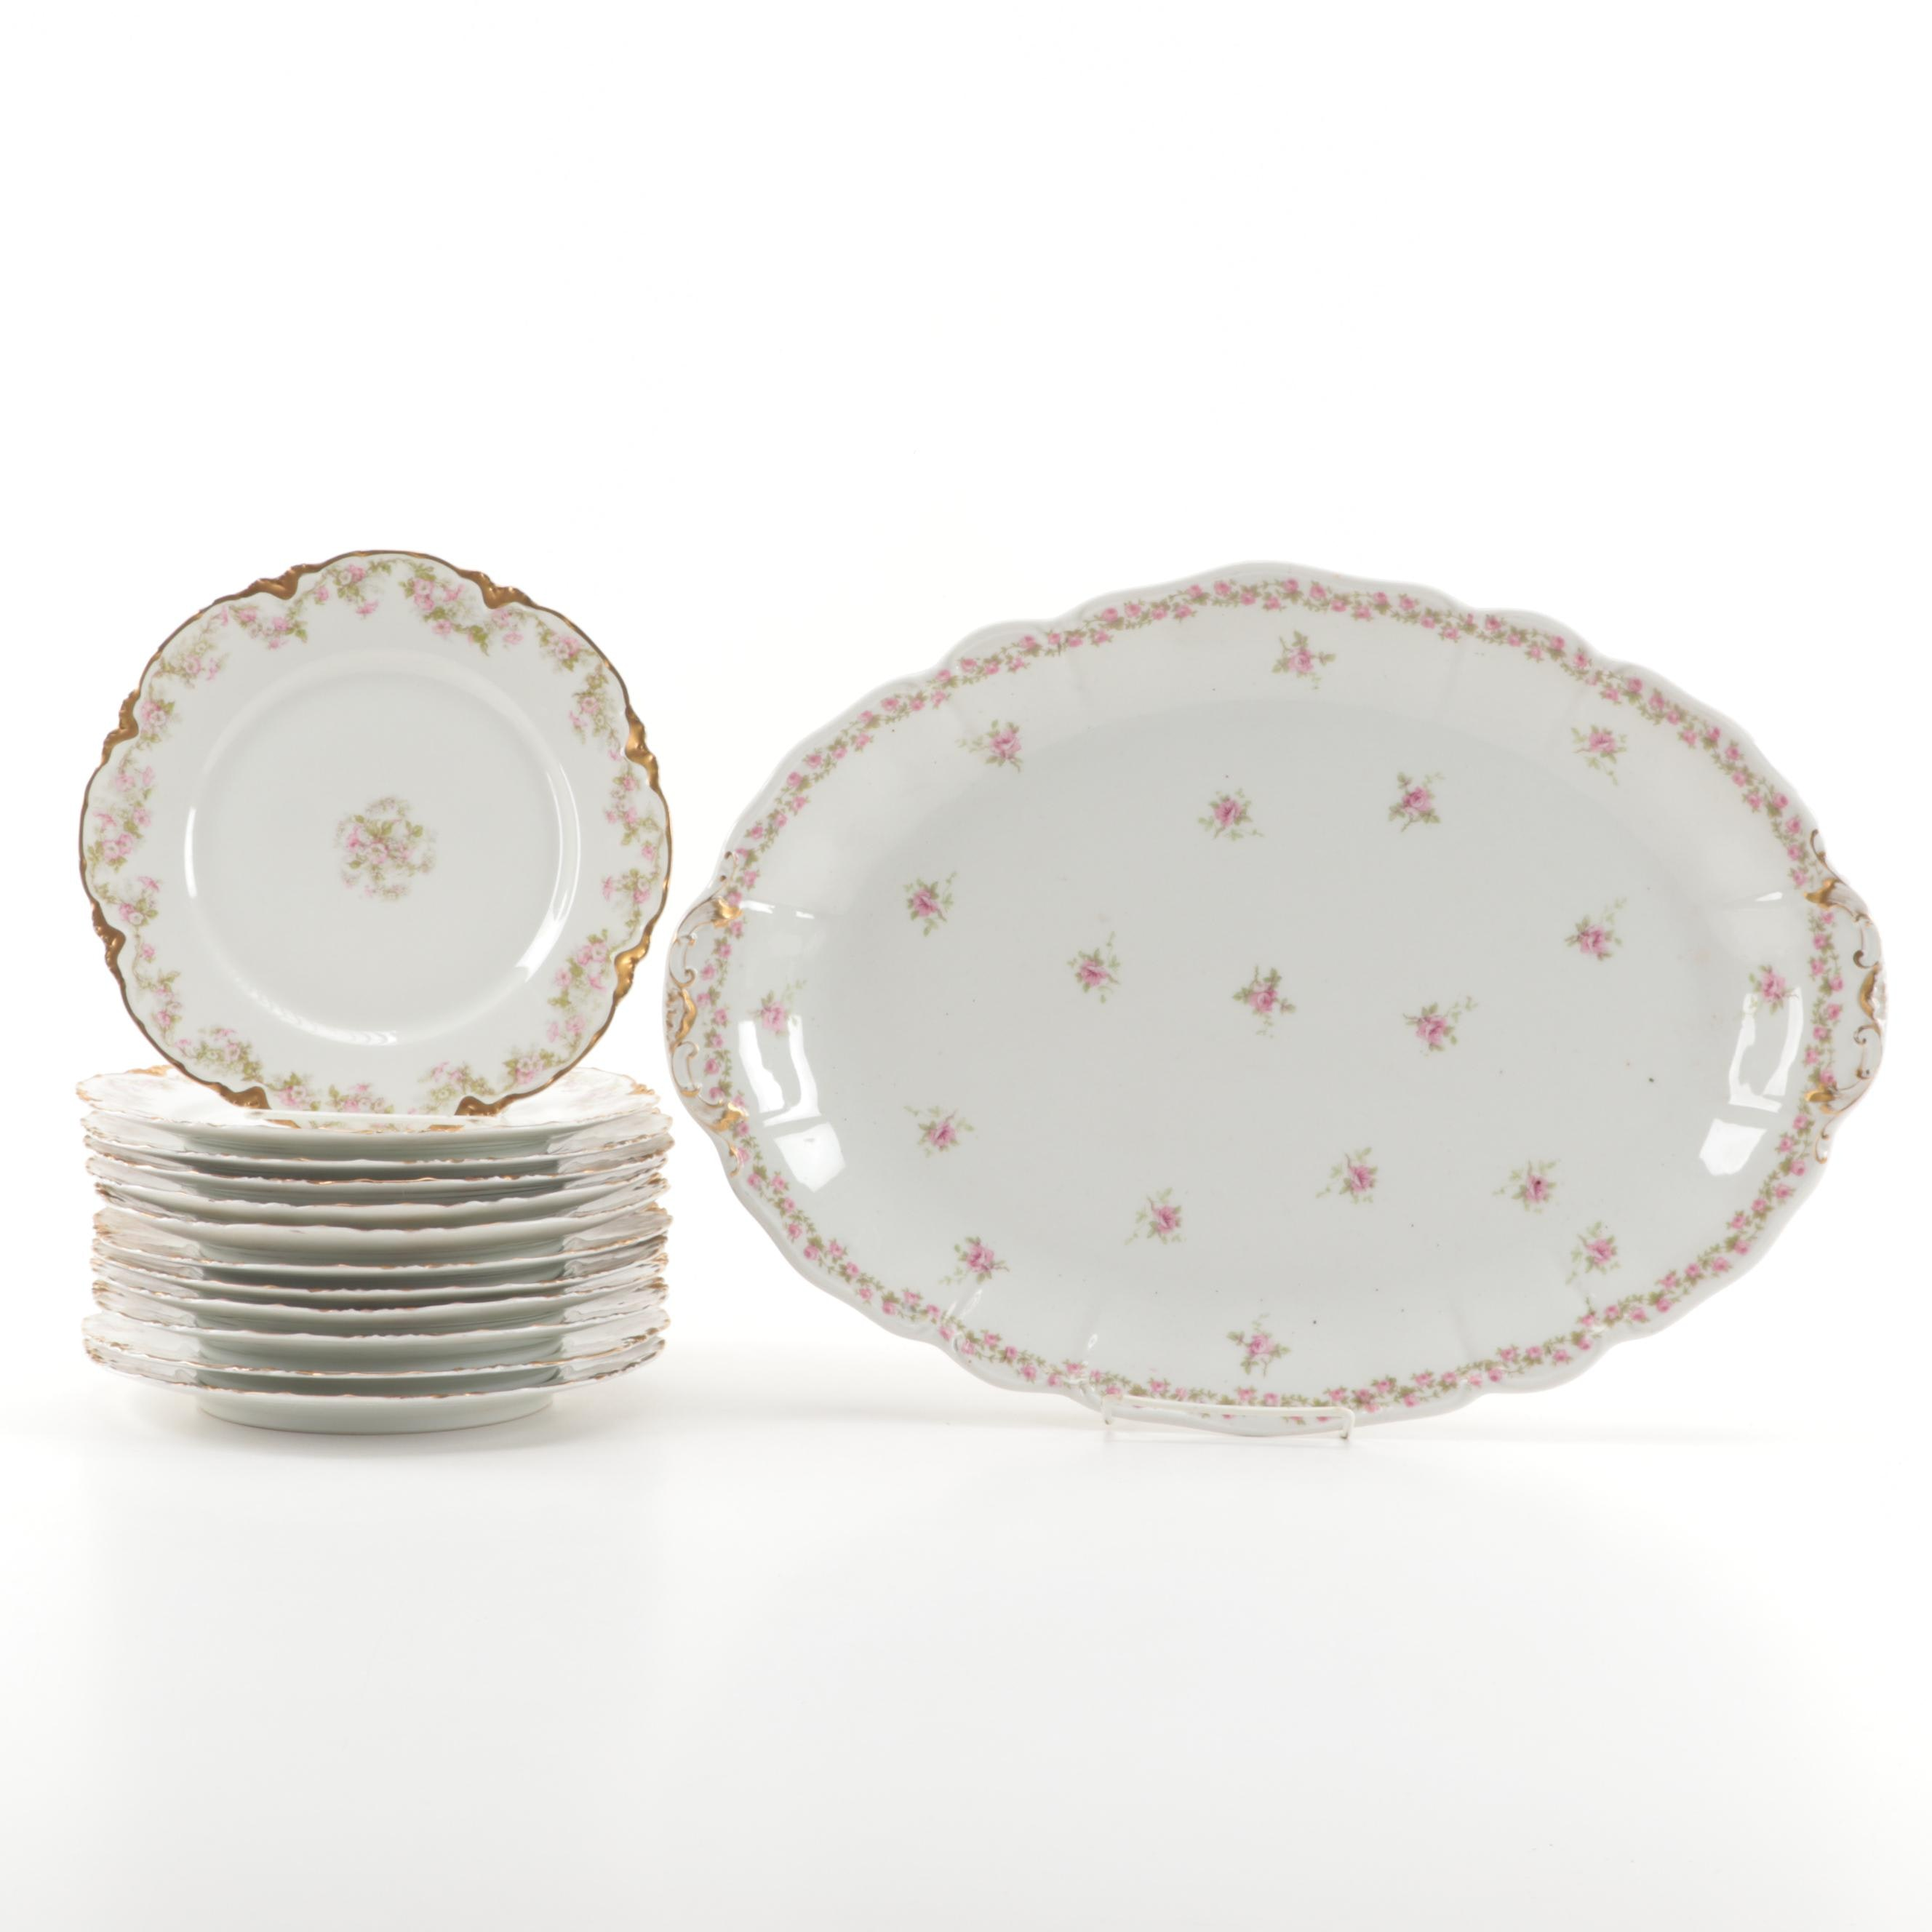 Haviland Limoges Porcelain Serveware and Plates c.1889-1931